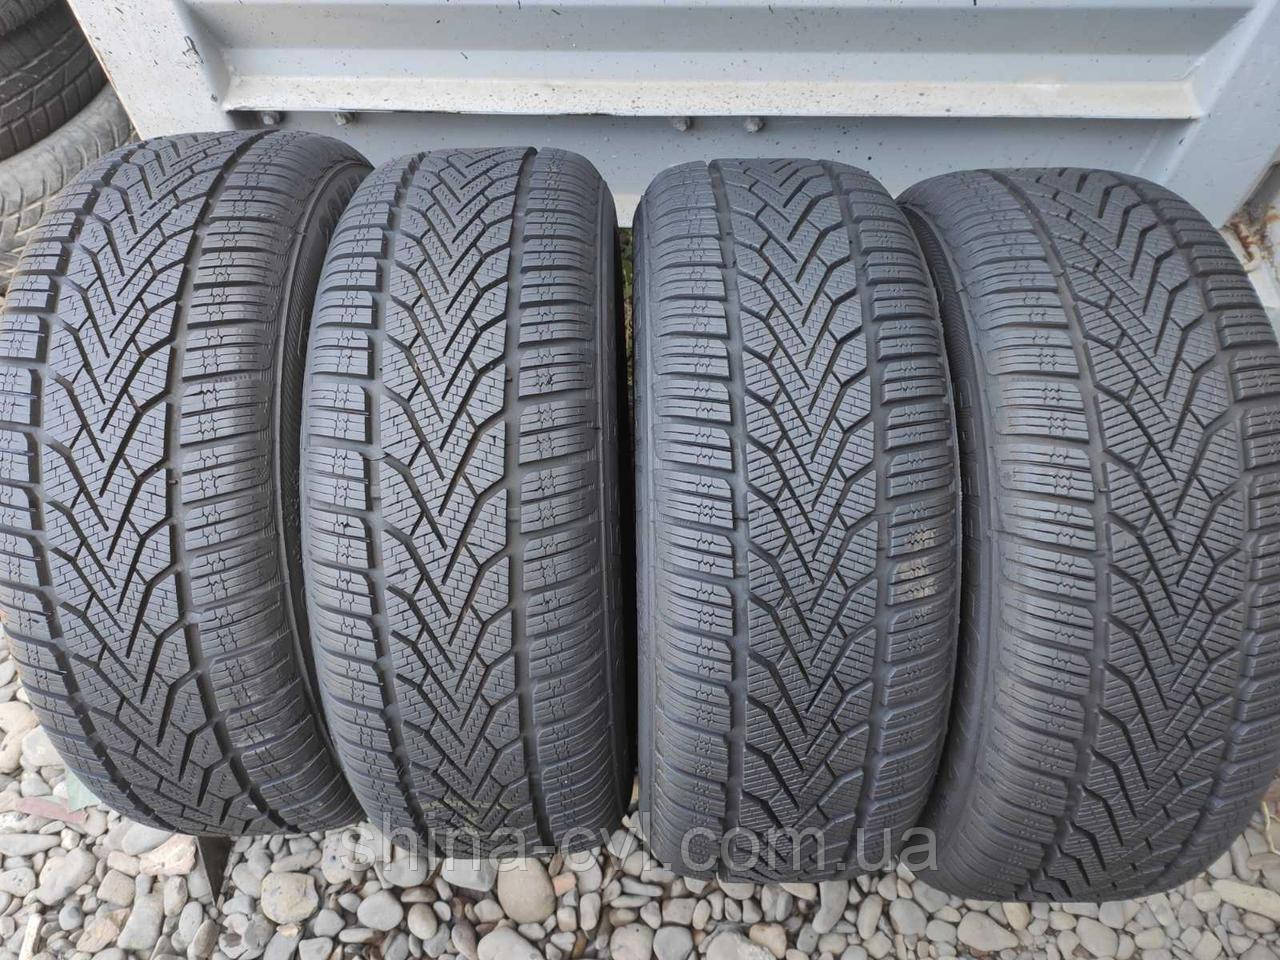 Зимові шини 205/55 R16 91H SEMPERIT SPEED-GRIP2